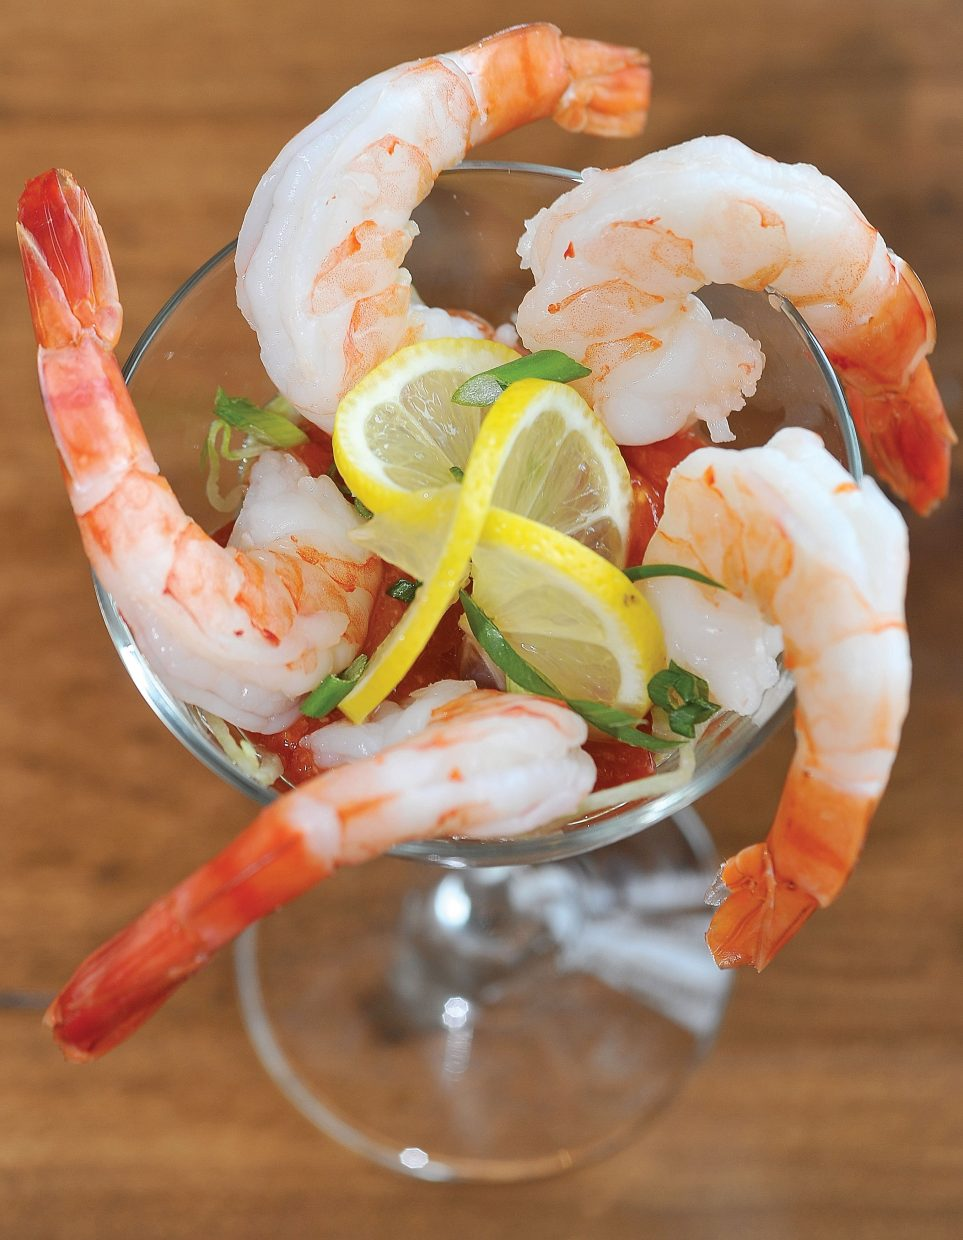 Shrimp cocktail is one of the limited menu items Haymaker Patio Grill is offering at lunch. The restaurant, which is operated by Steamboat Ski and Resort Corp., eventually will offer breakfast and dinner.